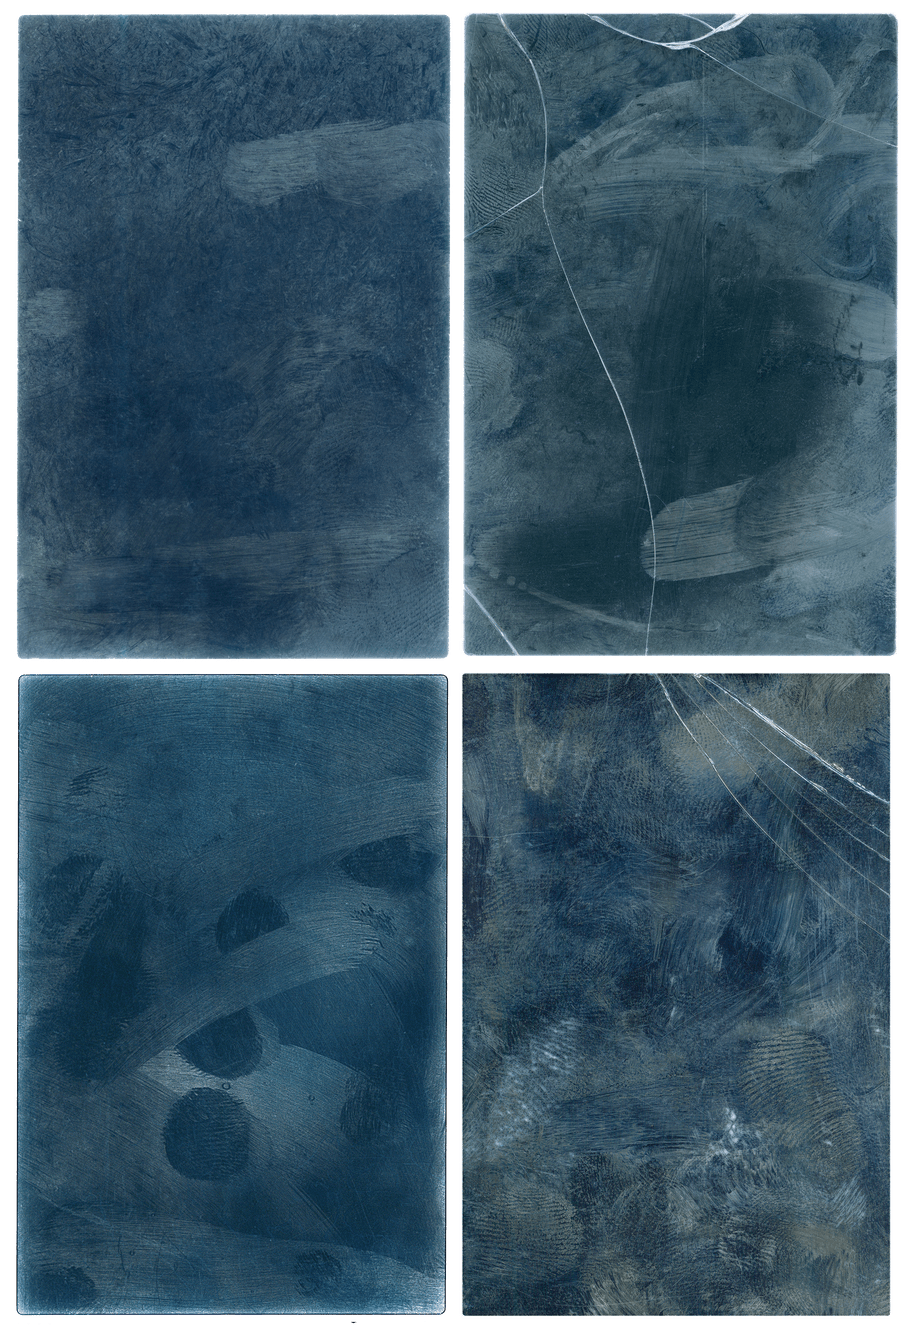 Rectangles of blue side by side in a 2:2 formation. They are dark blue with lighter whiter smudges on them; to the right both images have glass cracks running through them